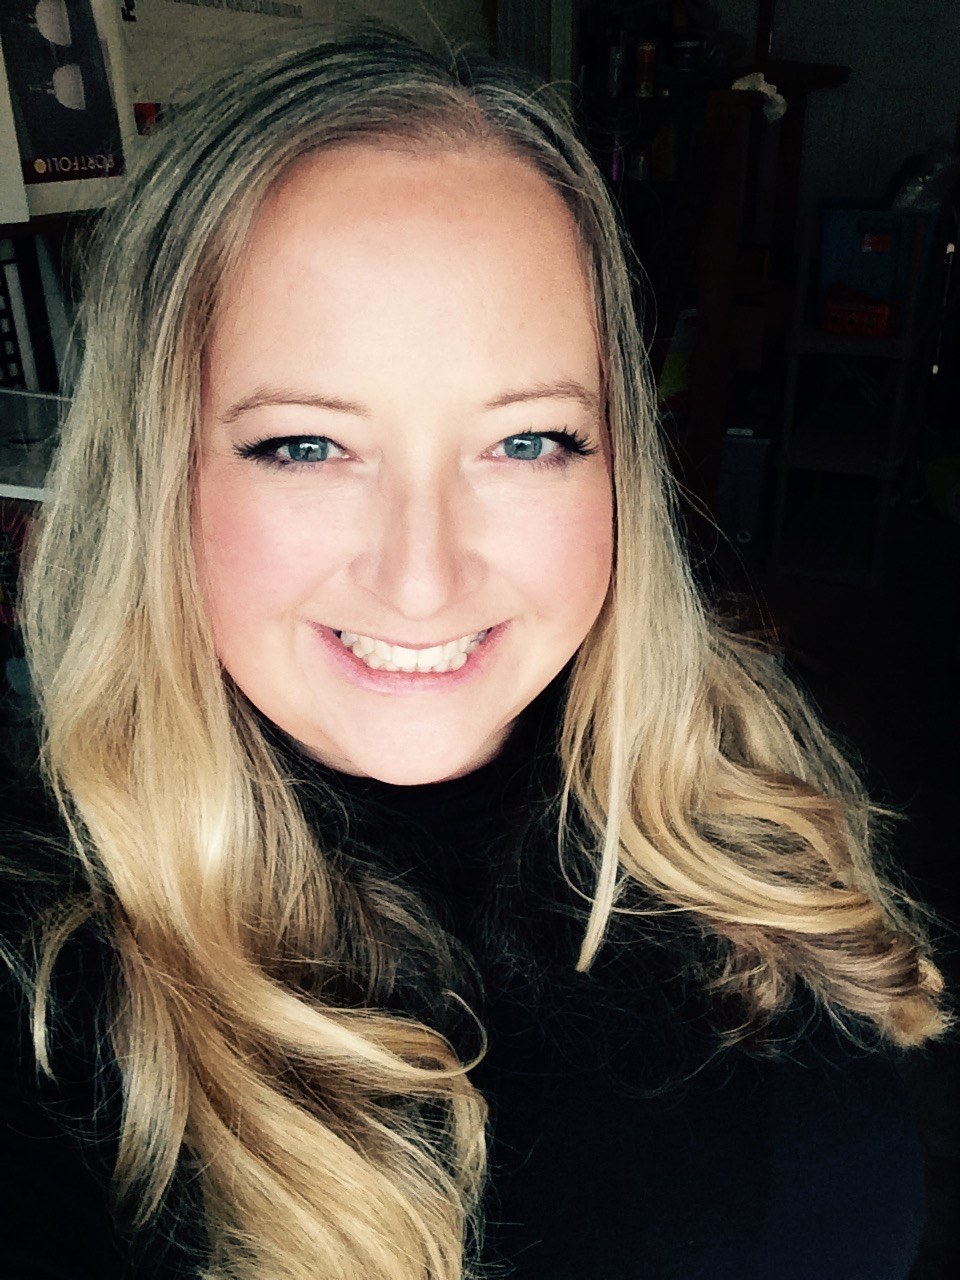 Meet the host of Sex Gets Real, Dawn Serra - sex educator, sex and relationship coach, podcaster, and more.